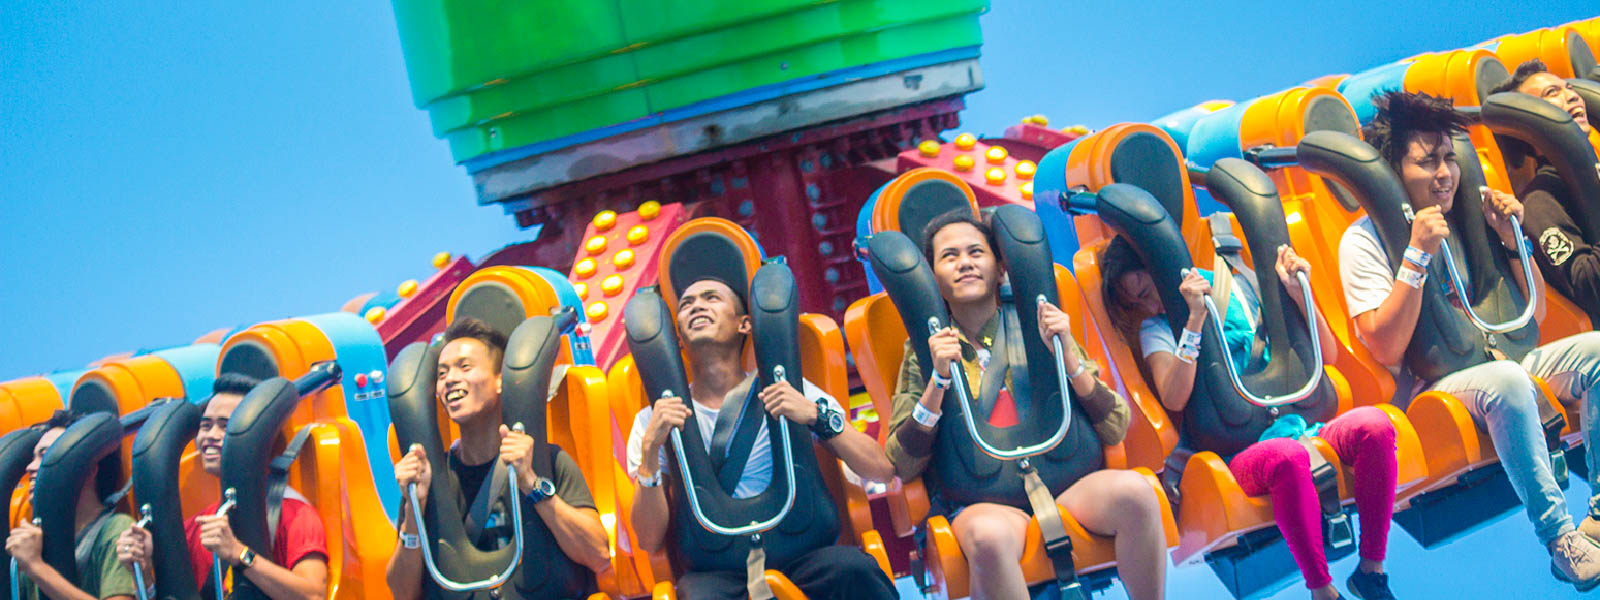 Enjoy more than 12 rides and attractions